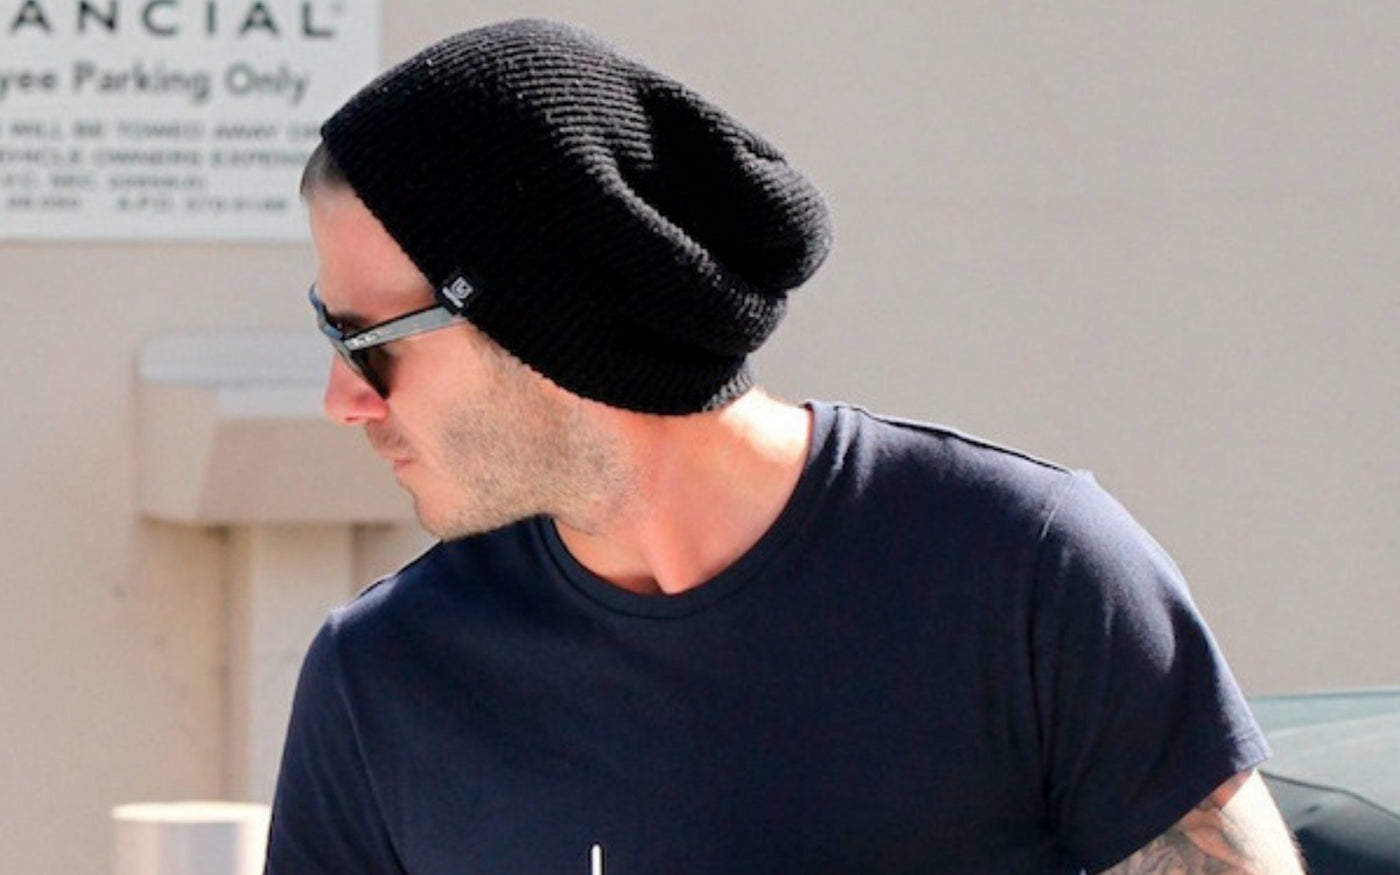 c7df2f595f3 David Beckham Beanie - Get the look - Slouchy Beanies for Men - King ...